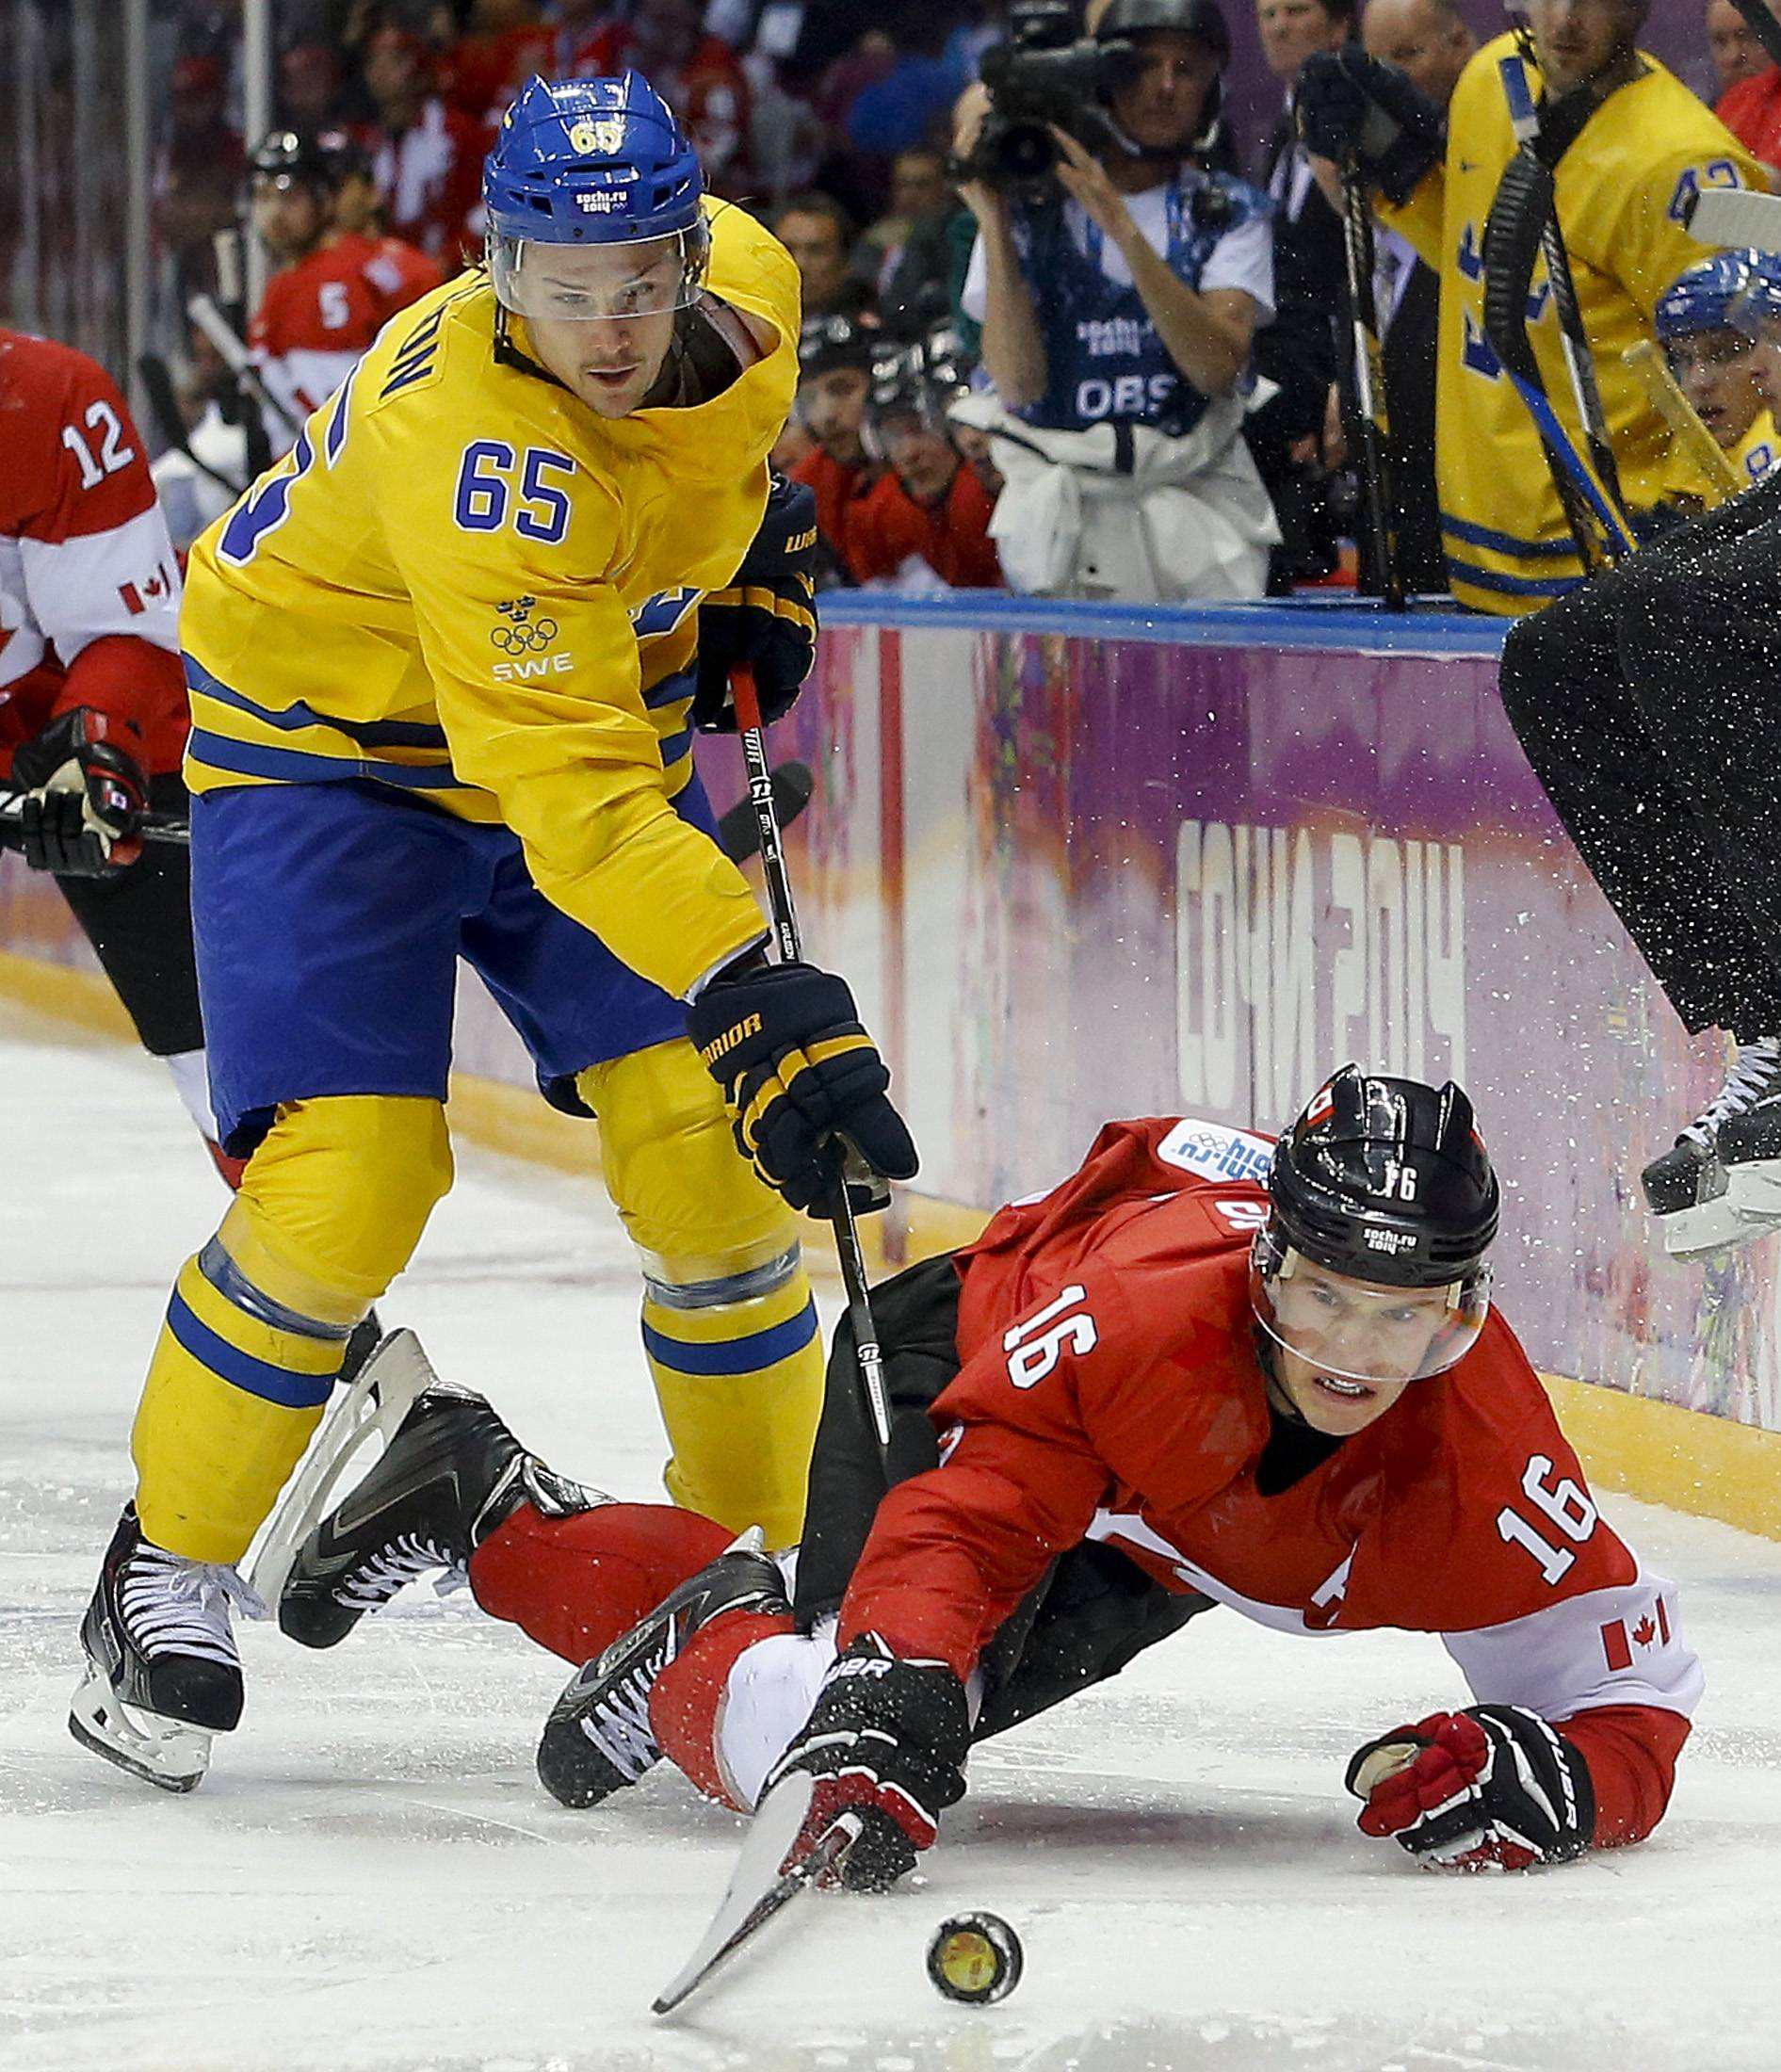 Canada forward Jonathan Toews dives after the puck against Sweden defenseman Erik Karlsson during the third period of the men's gold medal ice hockey game at the 2014 Winter Olympics, Sunday, Feb. 23, 2014, in Sochi, Russia.